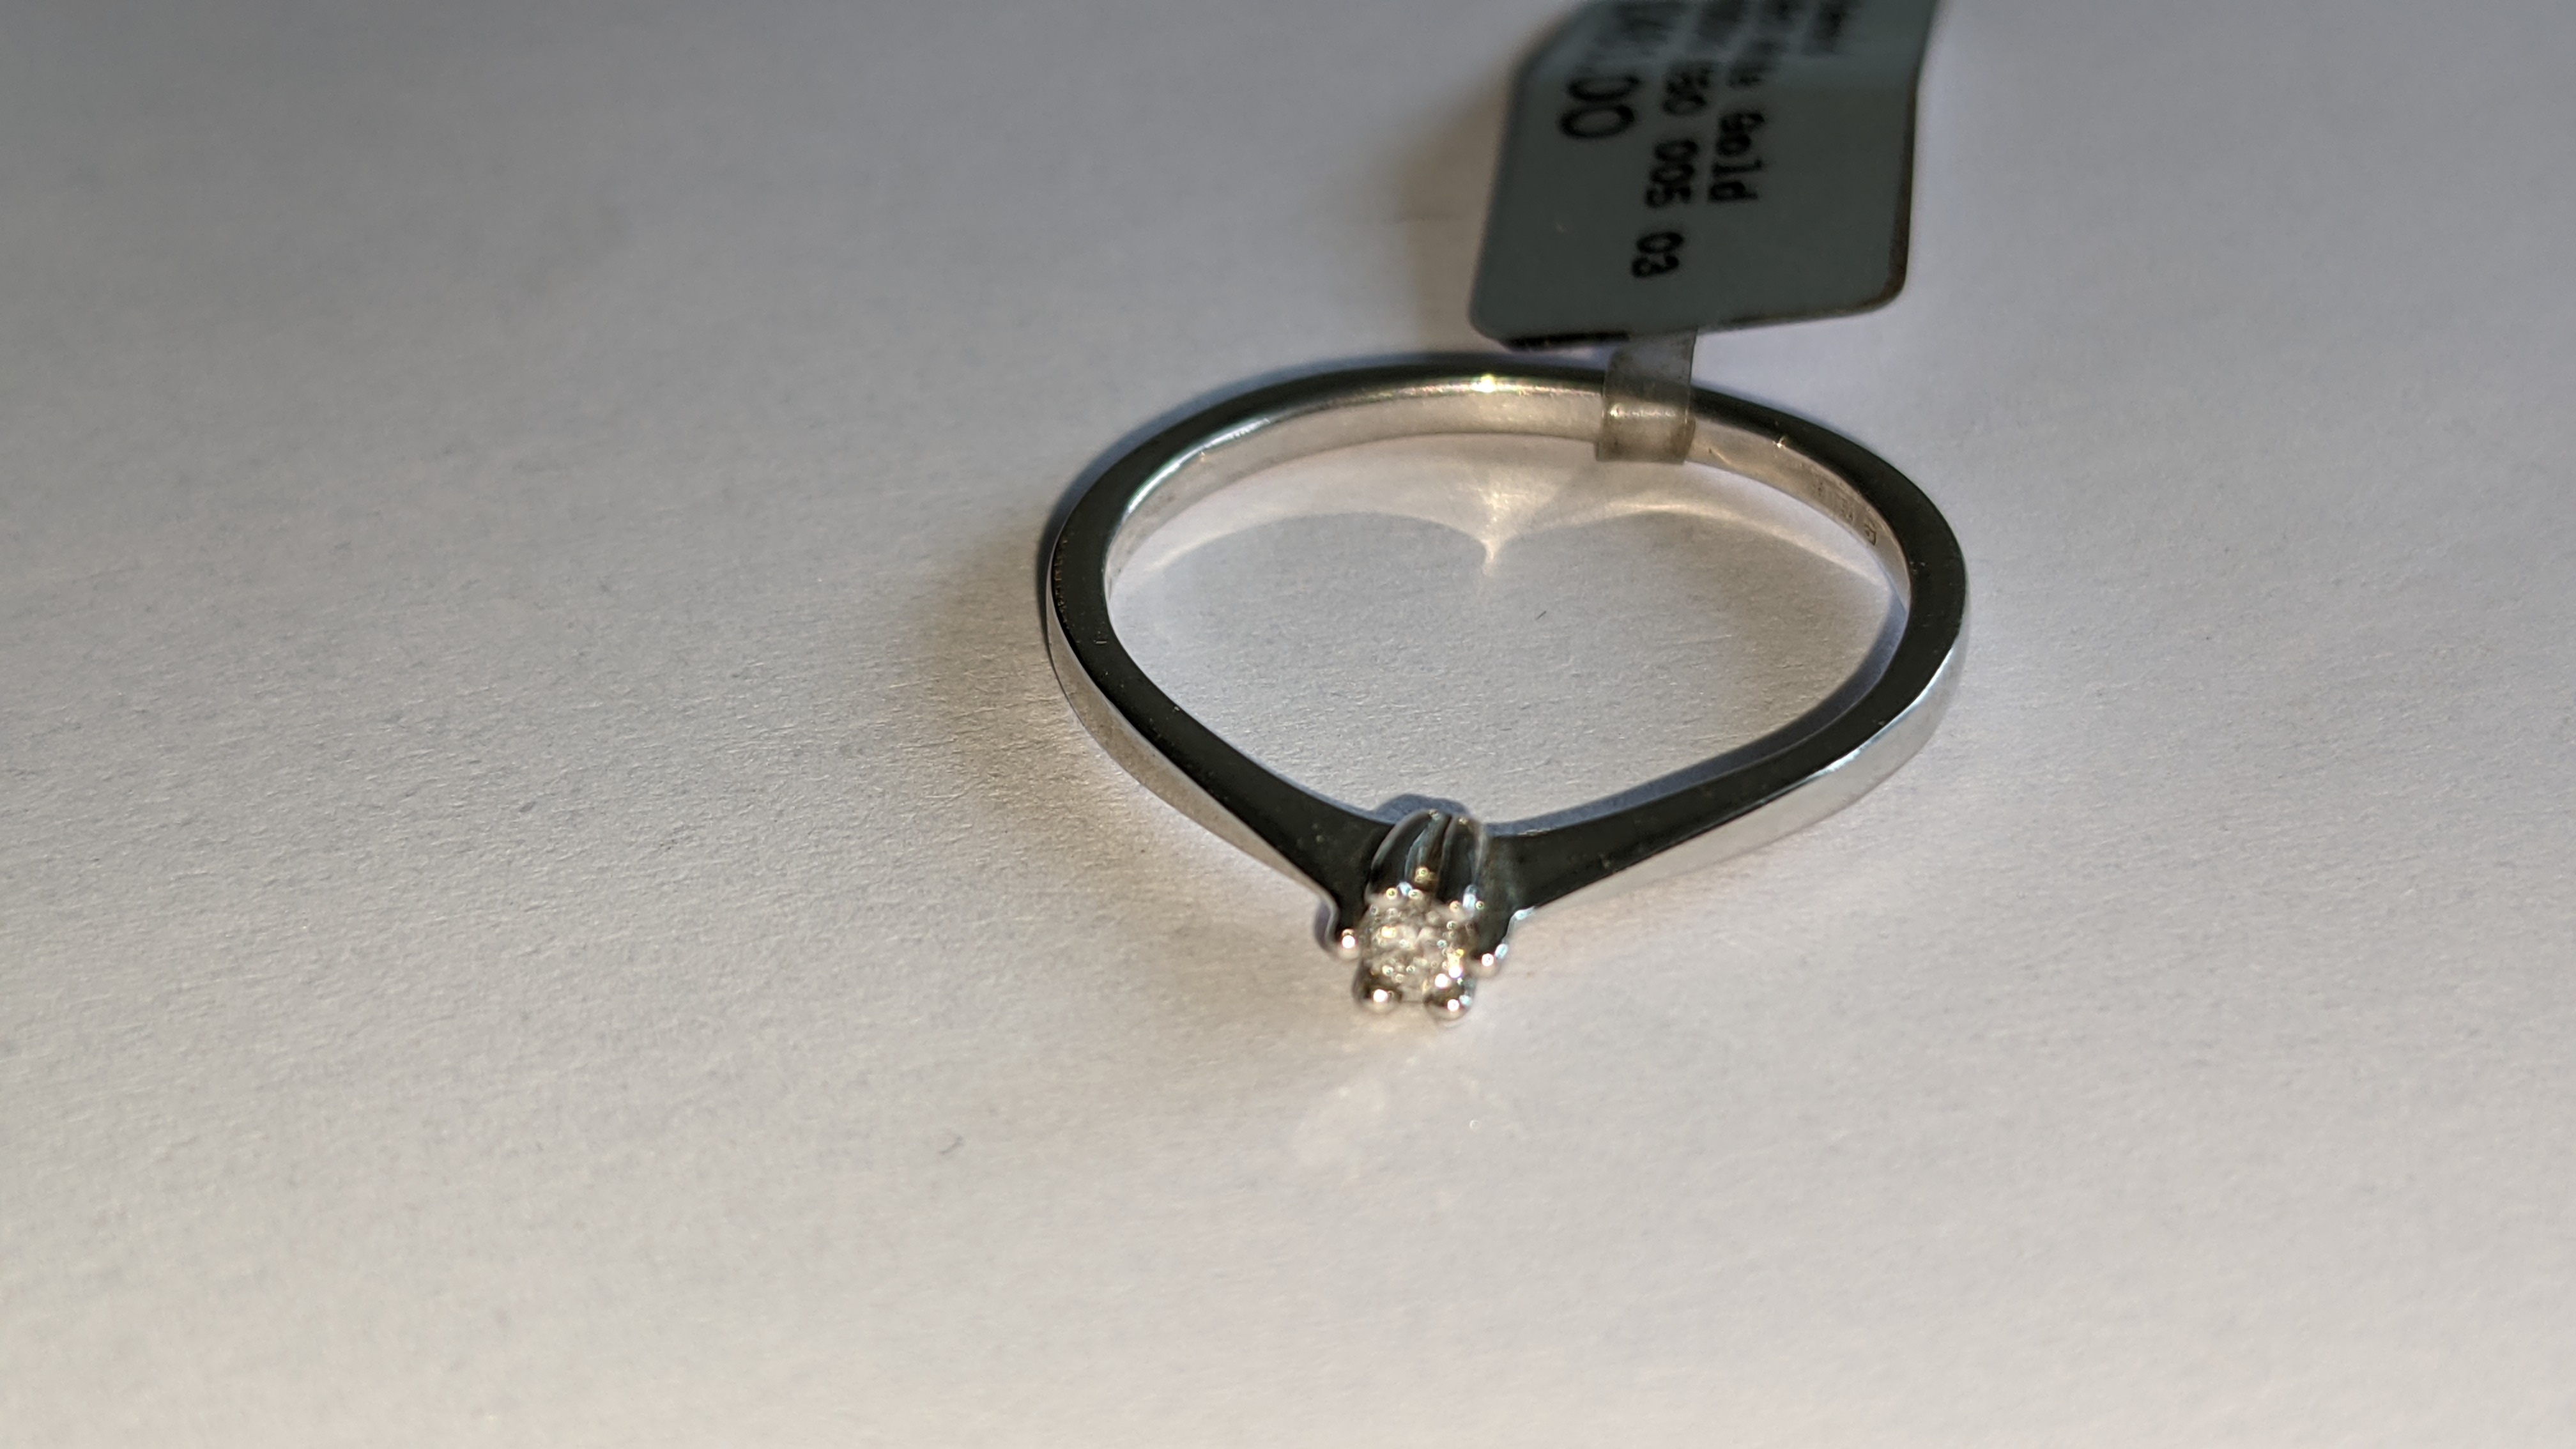 18ct white gold ring with central 0.05ct diamond. RRP £461 - Image 10 of 16